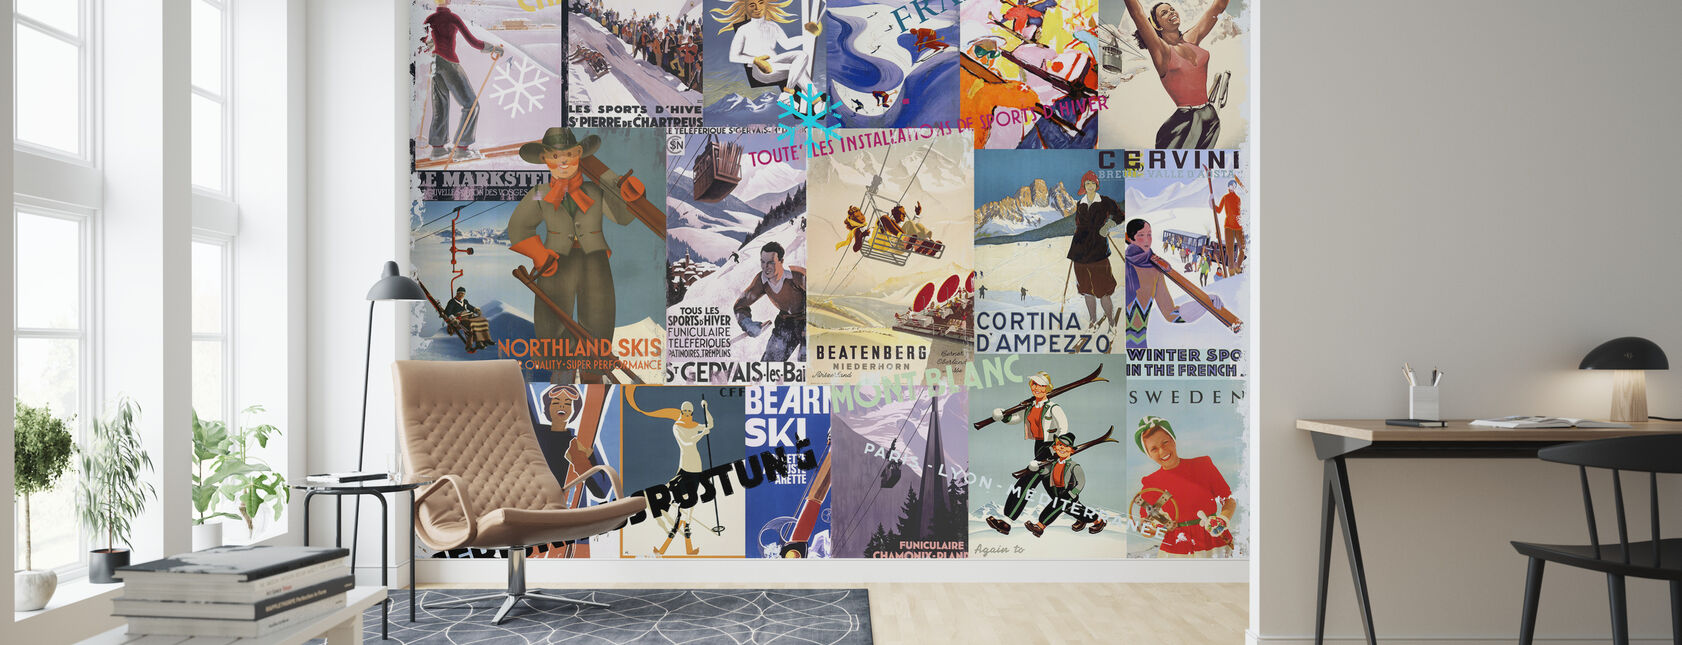 Ski Resorts Collage - Wallpaper - Living Room